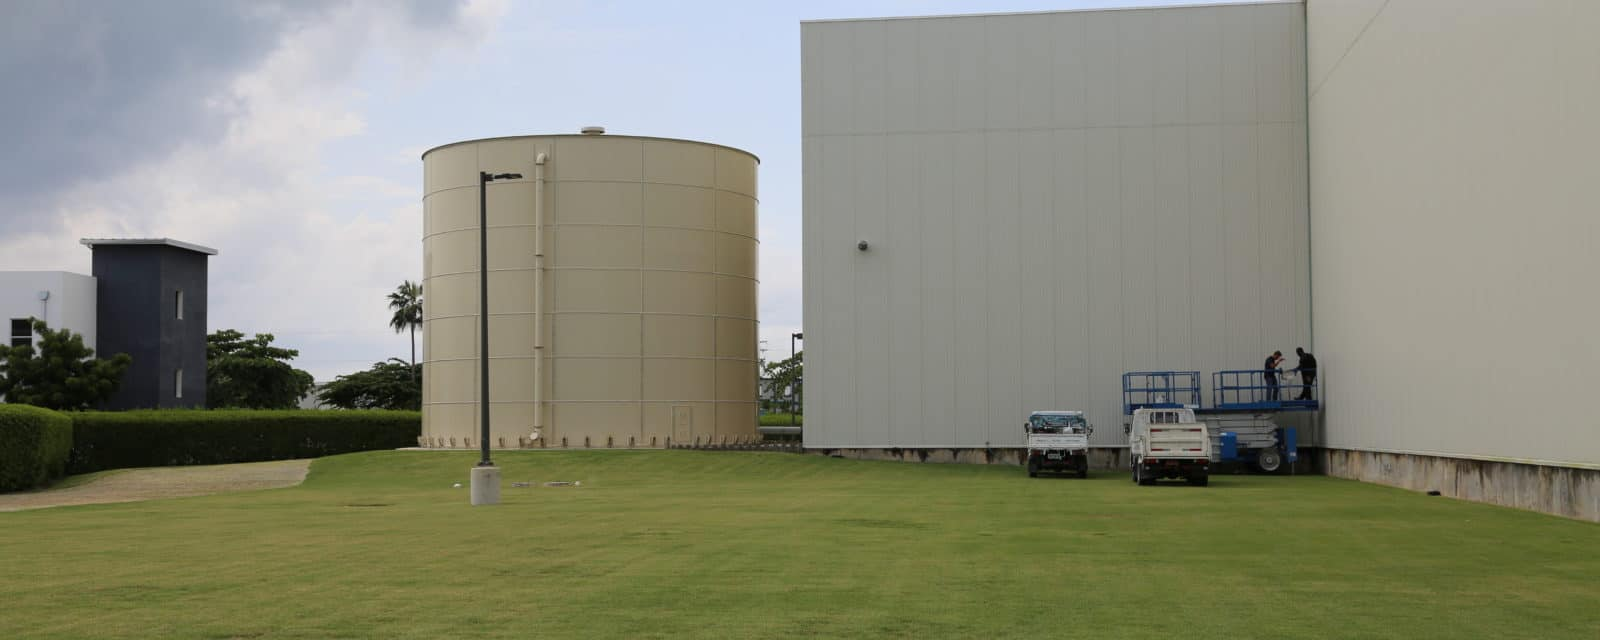 Industrial - warehouse seen from outside